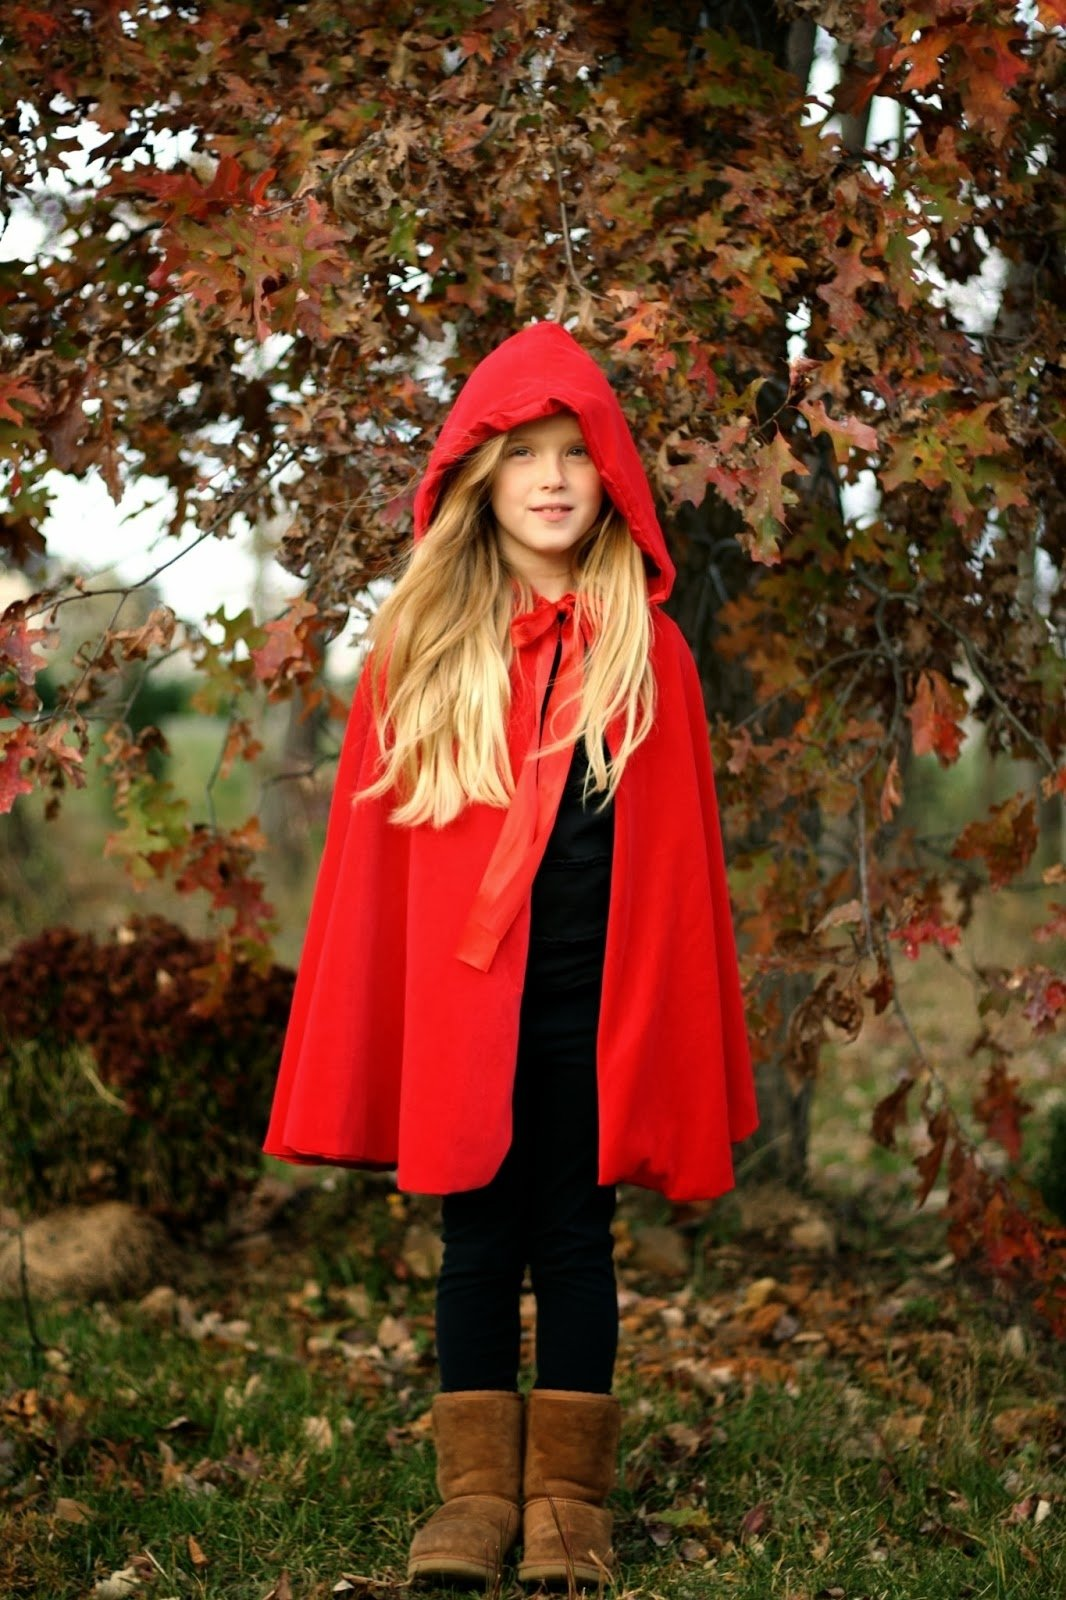 10 Pretty Little Red Riding Hood Costume Ideas keeping my cents c2a2c2a2c2a2 bumble bee little red riding hood halloween 2013 2021